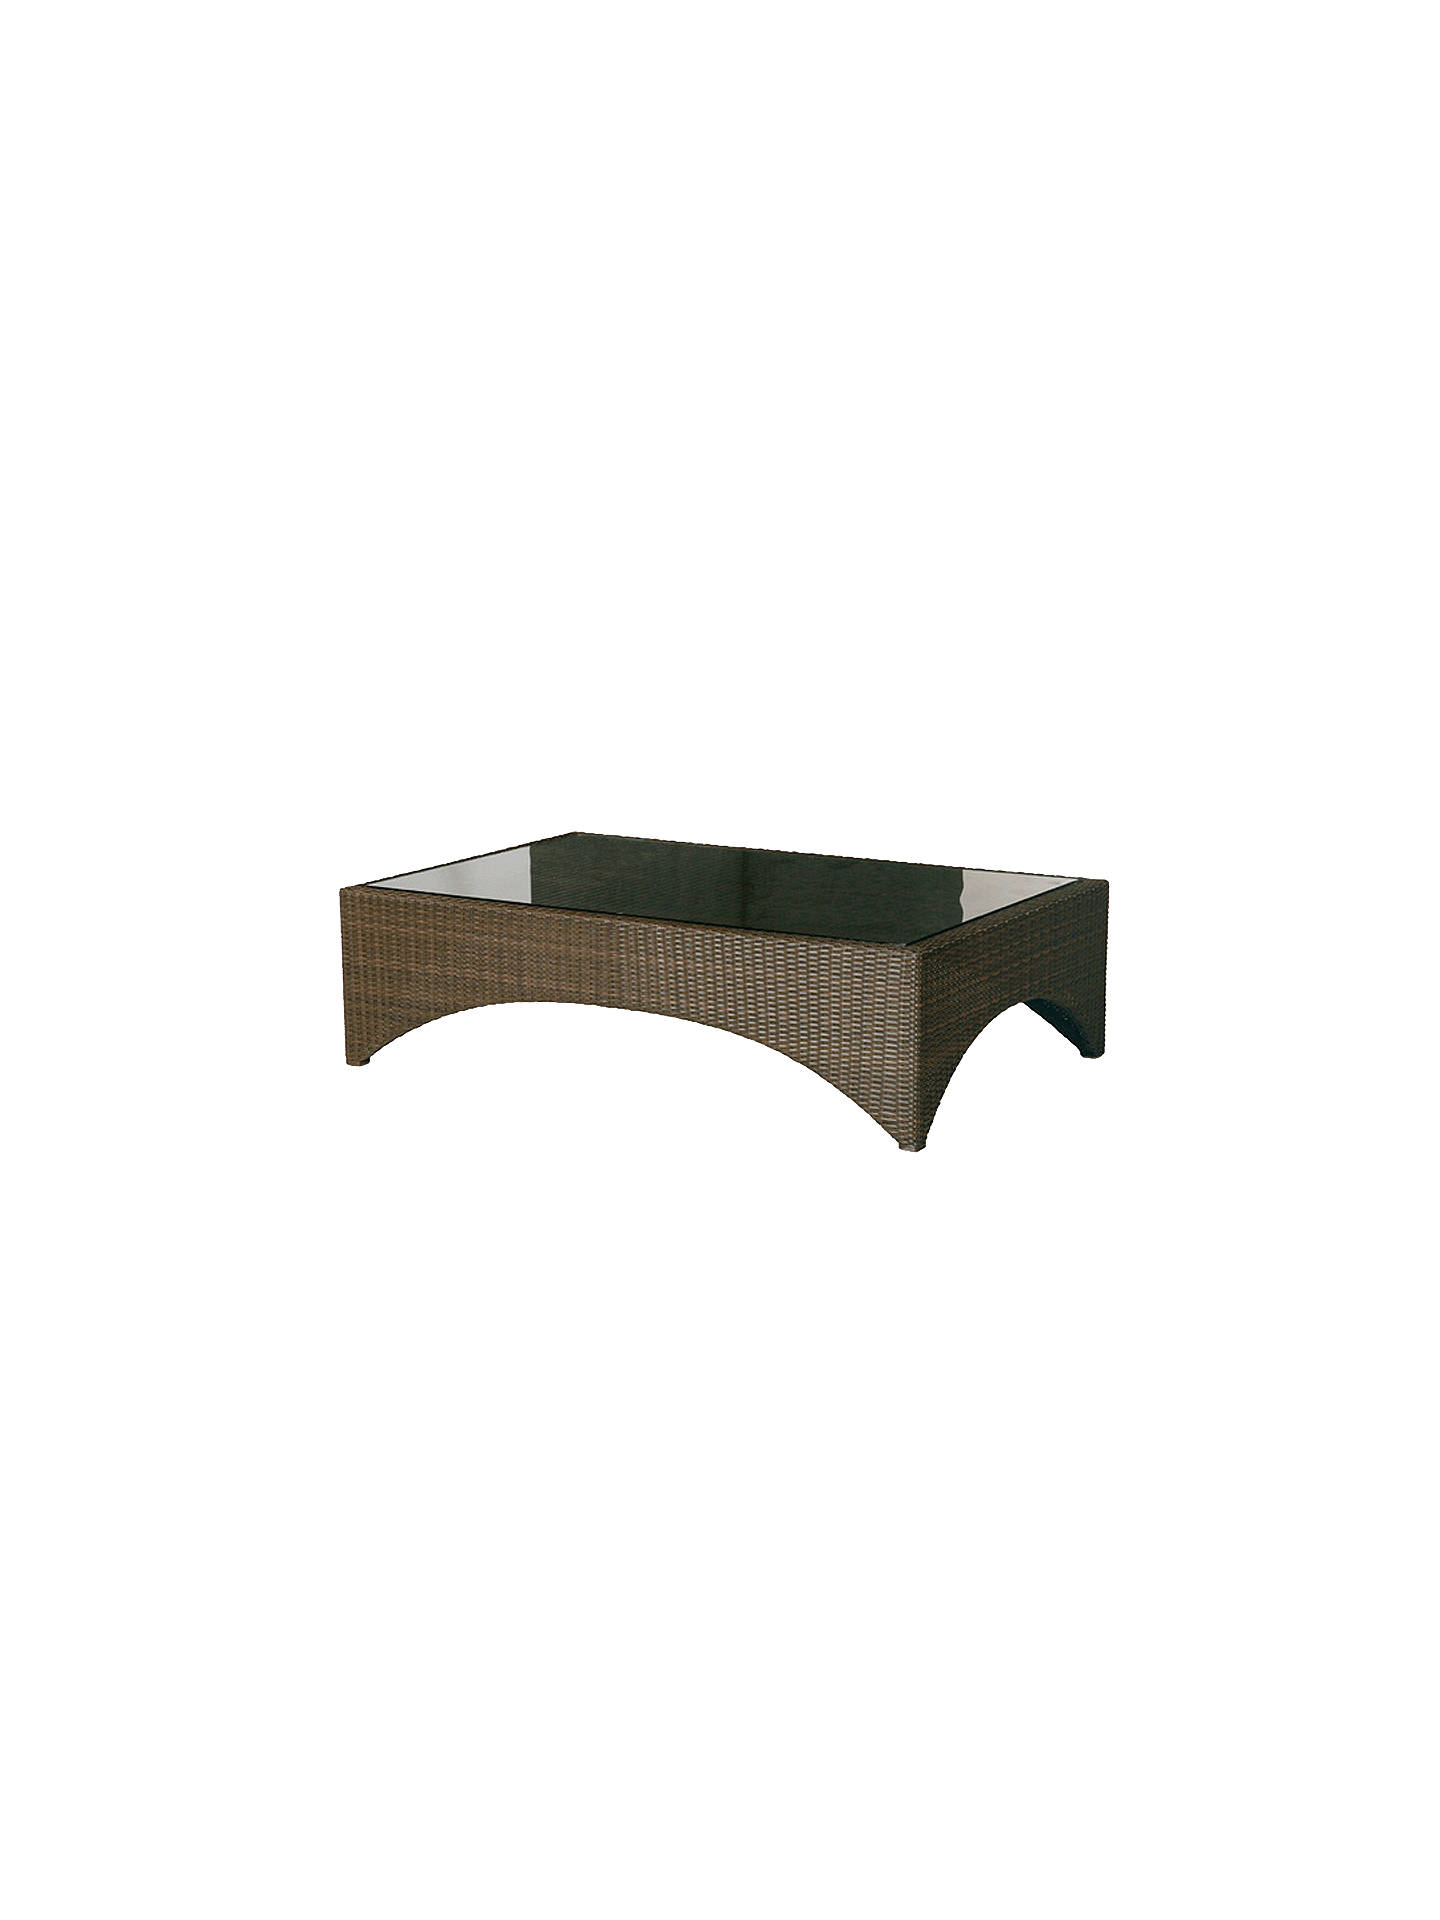 BuyBarlow Tyrie Savannah Rectangular 6-Seat Garden Coffee Table Online at johnlewis.com